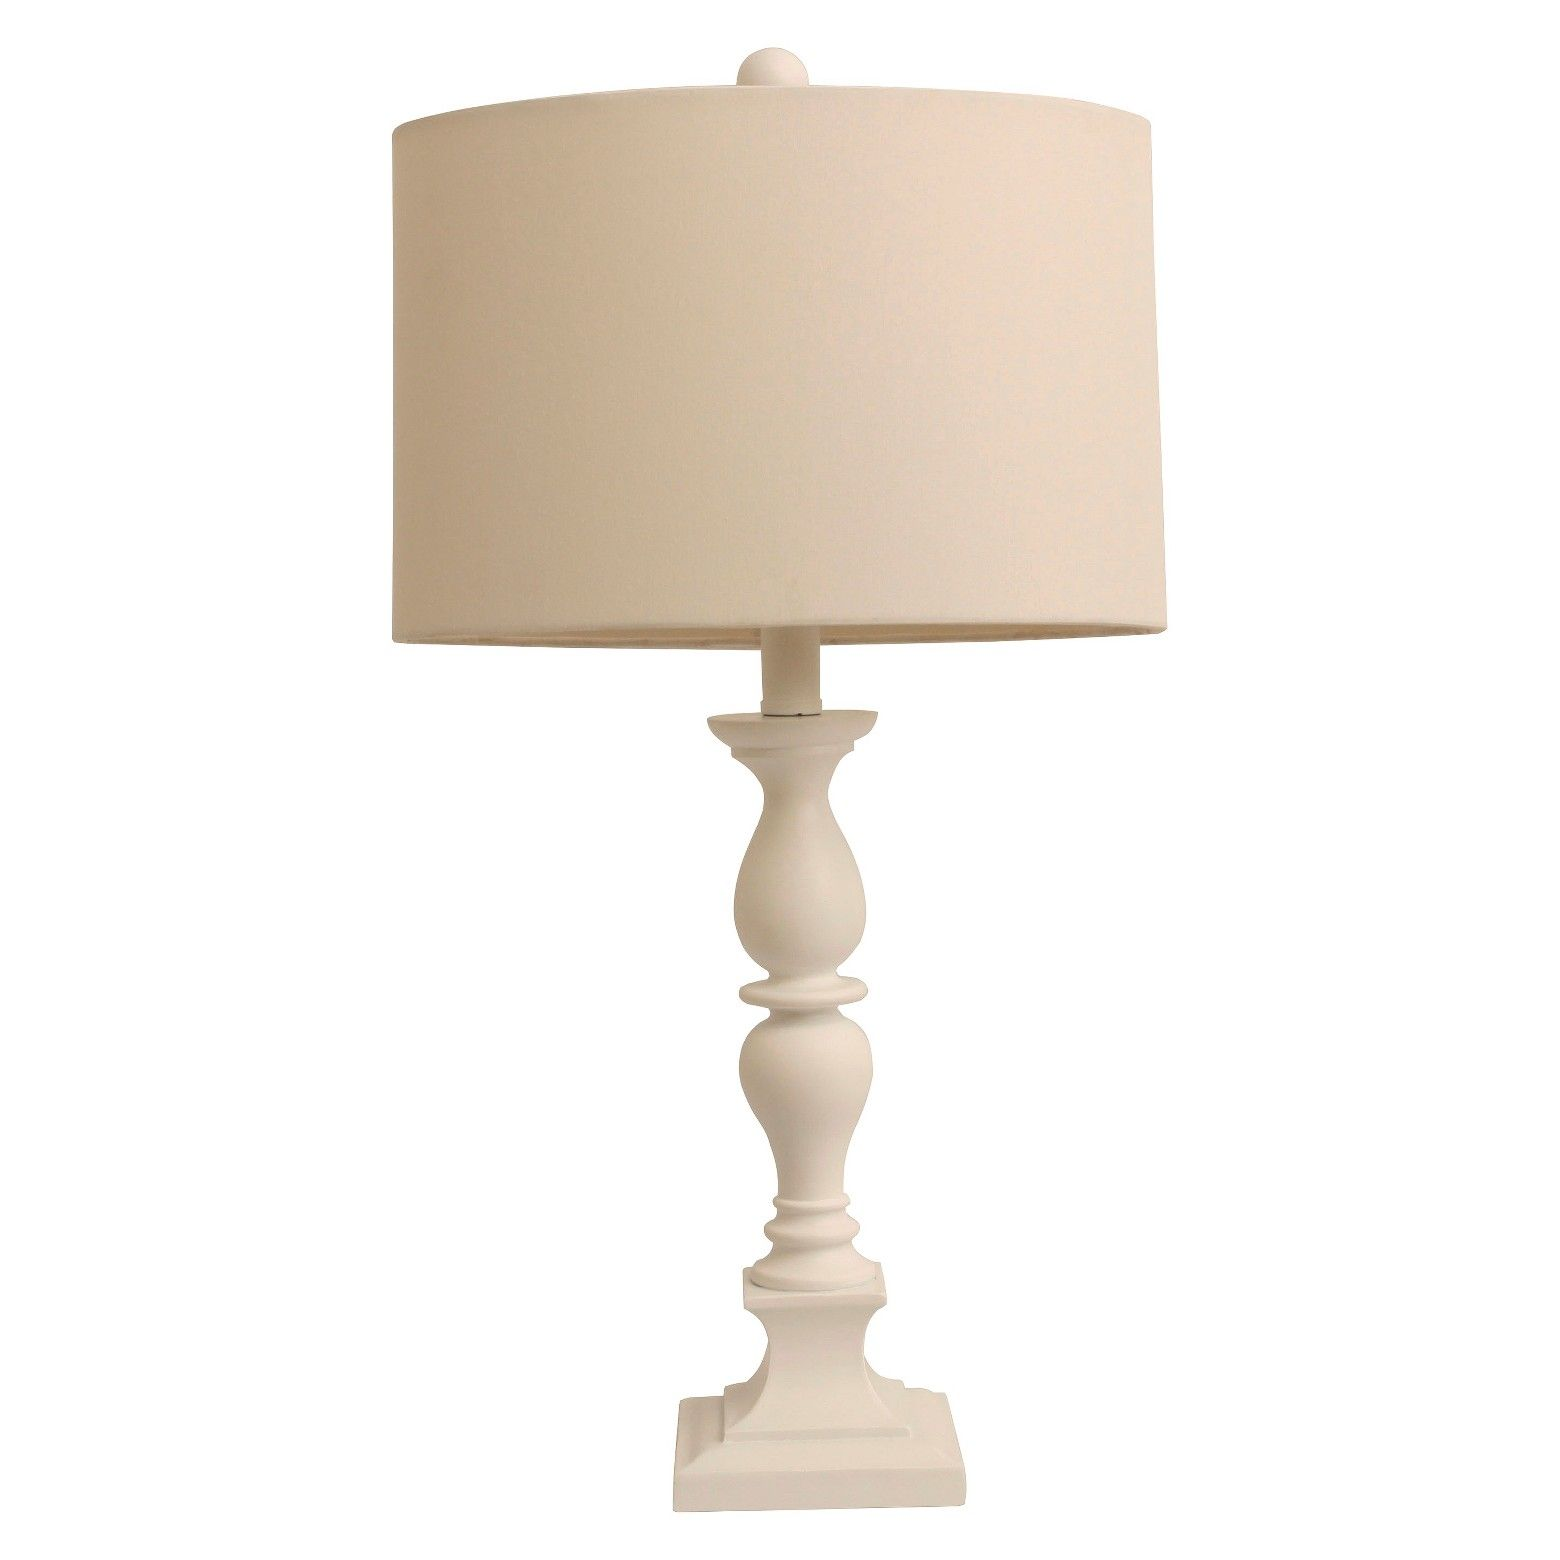 The Traditional Design Of The Classic Table Lamp From J Hunt Will Make Any Space Instantly Bright Classic Table Lamp White Table Lamp Transitional Table Lamps